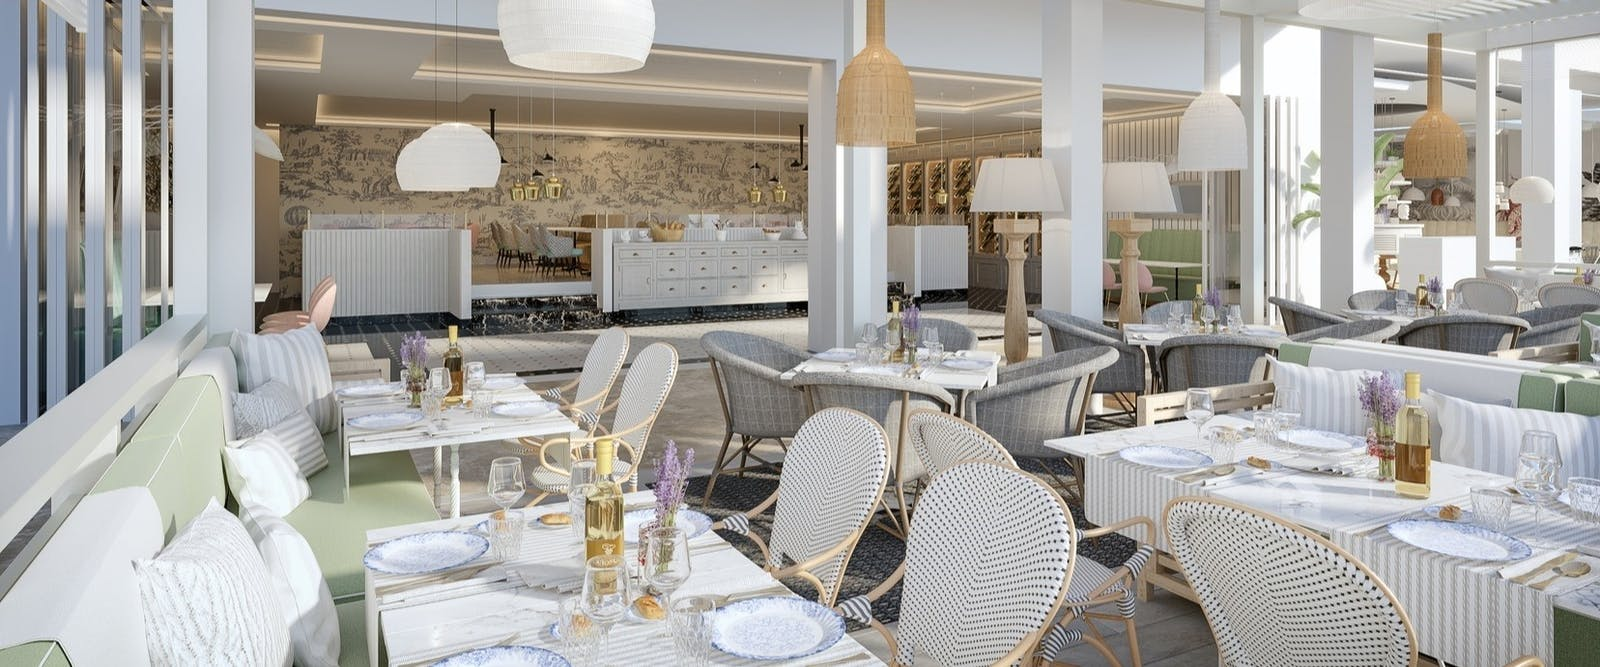 Provence Restaurant at Ikos Andalusia, Costa Del Sol, Spain